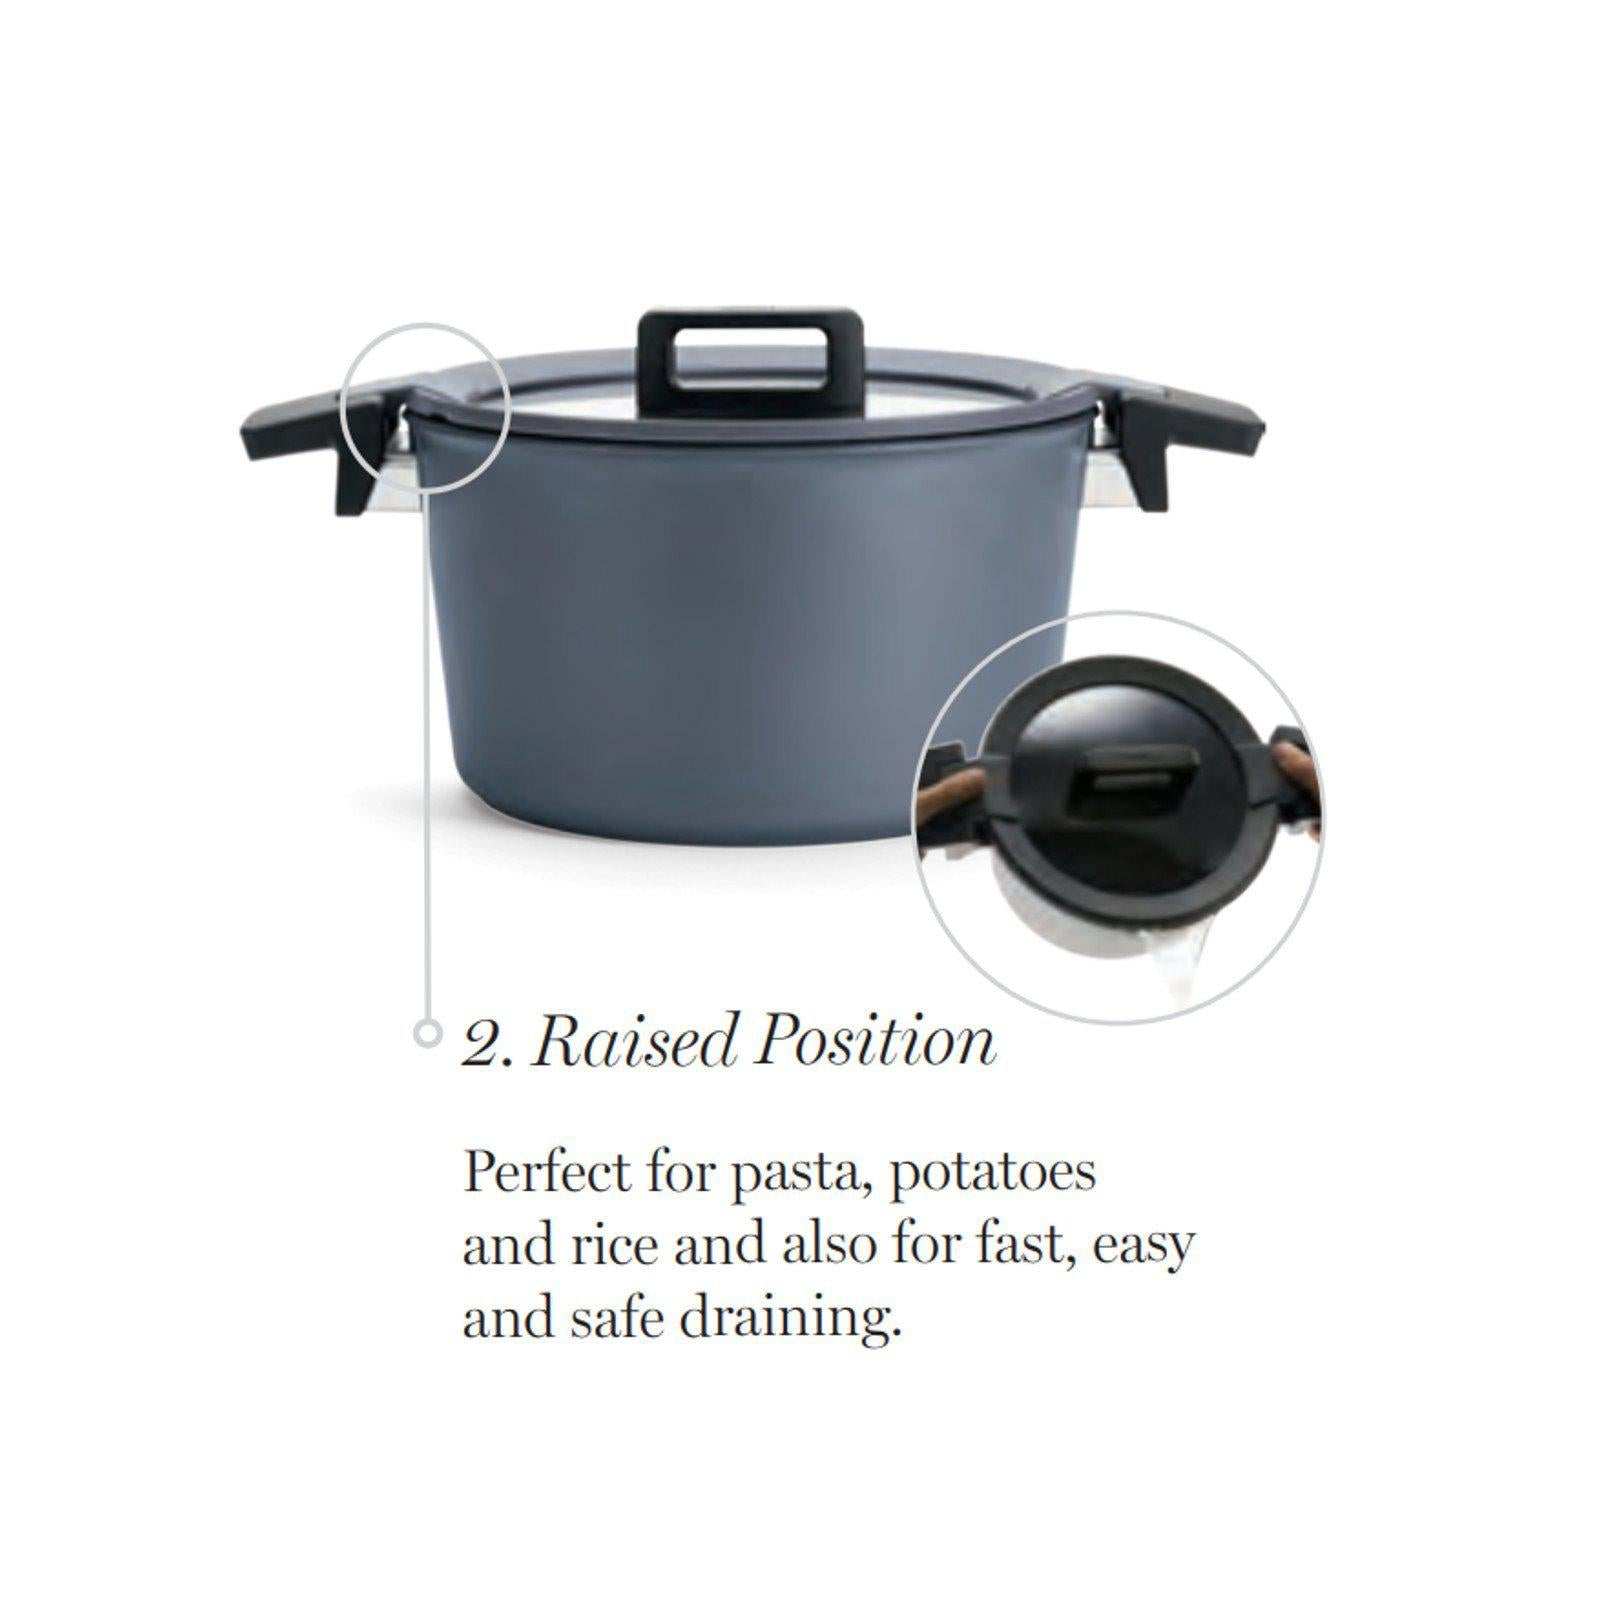 Woll 5 Litre Diamond Concept Plus Induction Casserole Stockpot-casserole-Chef's Quality Cookware